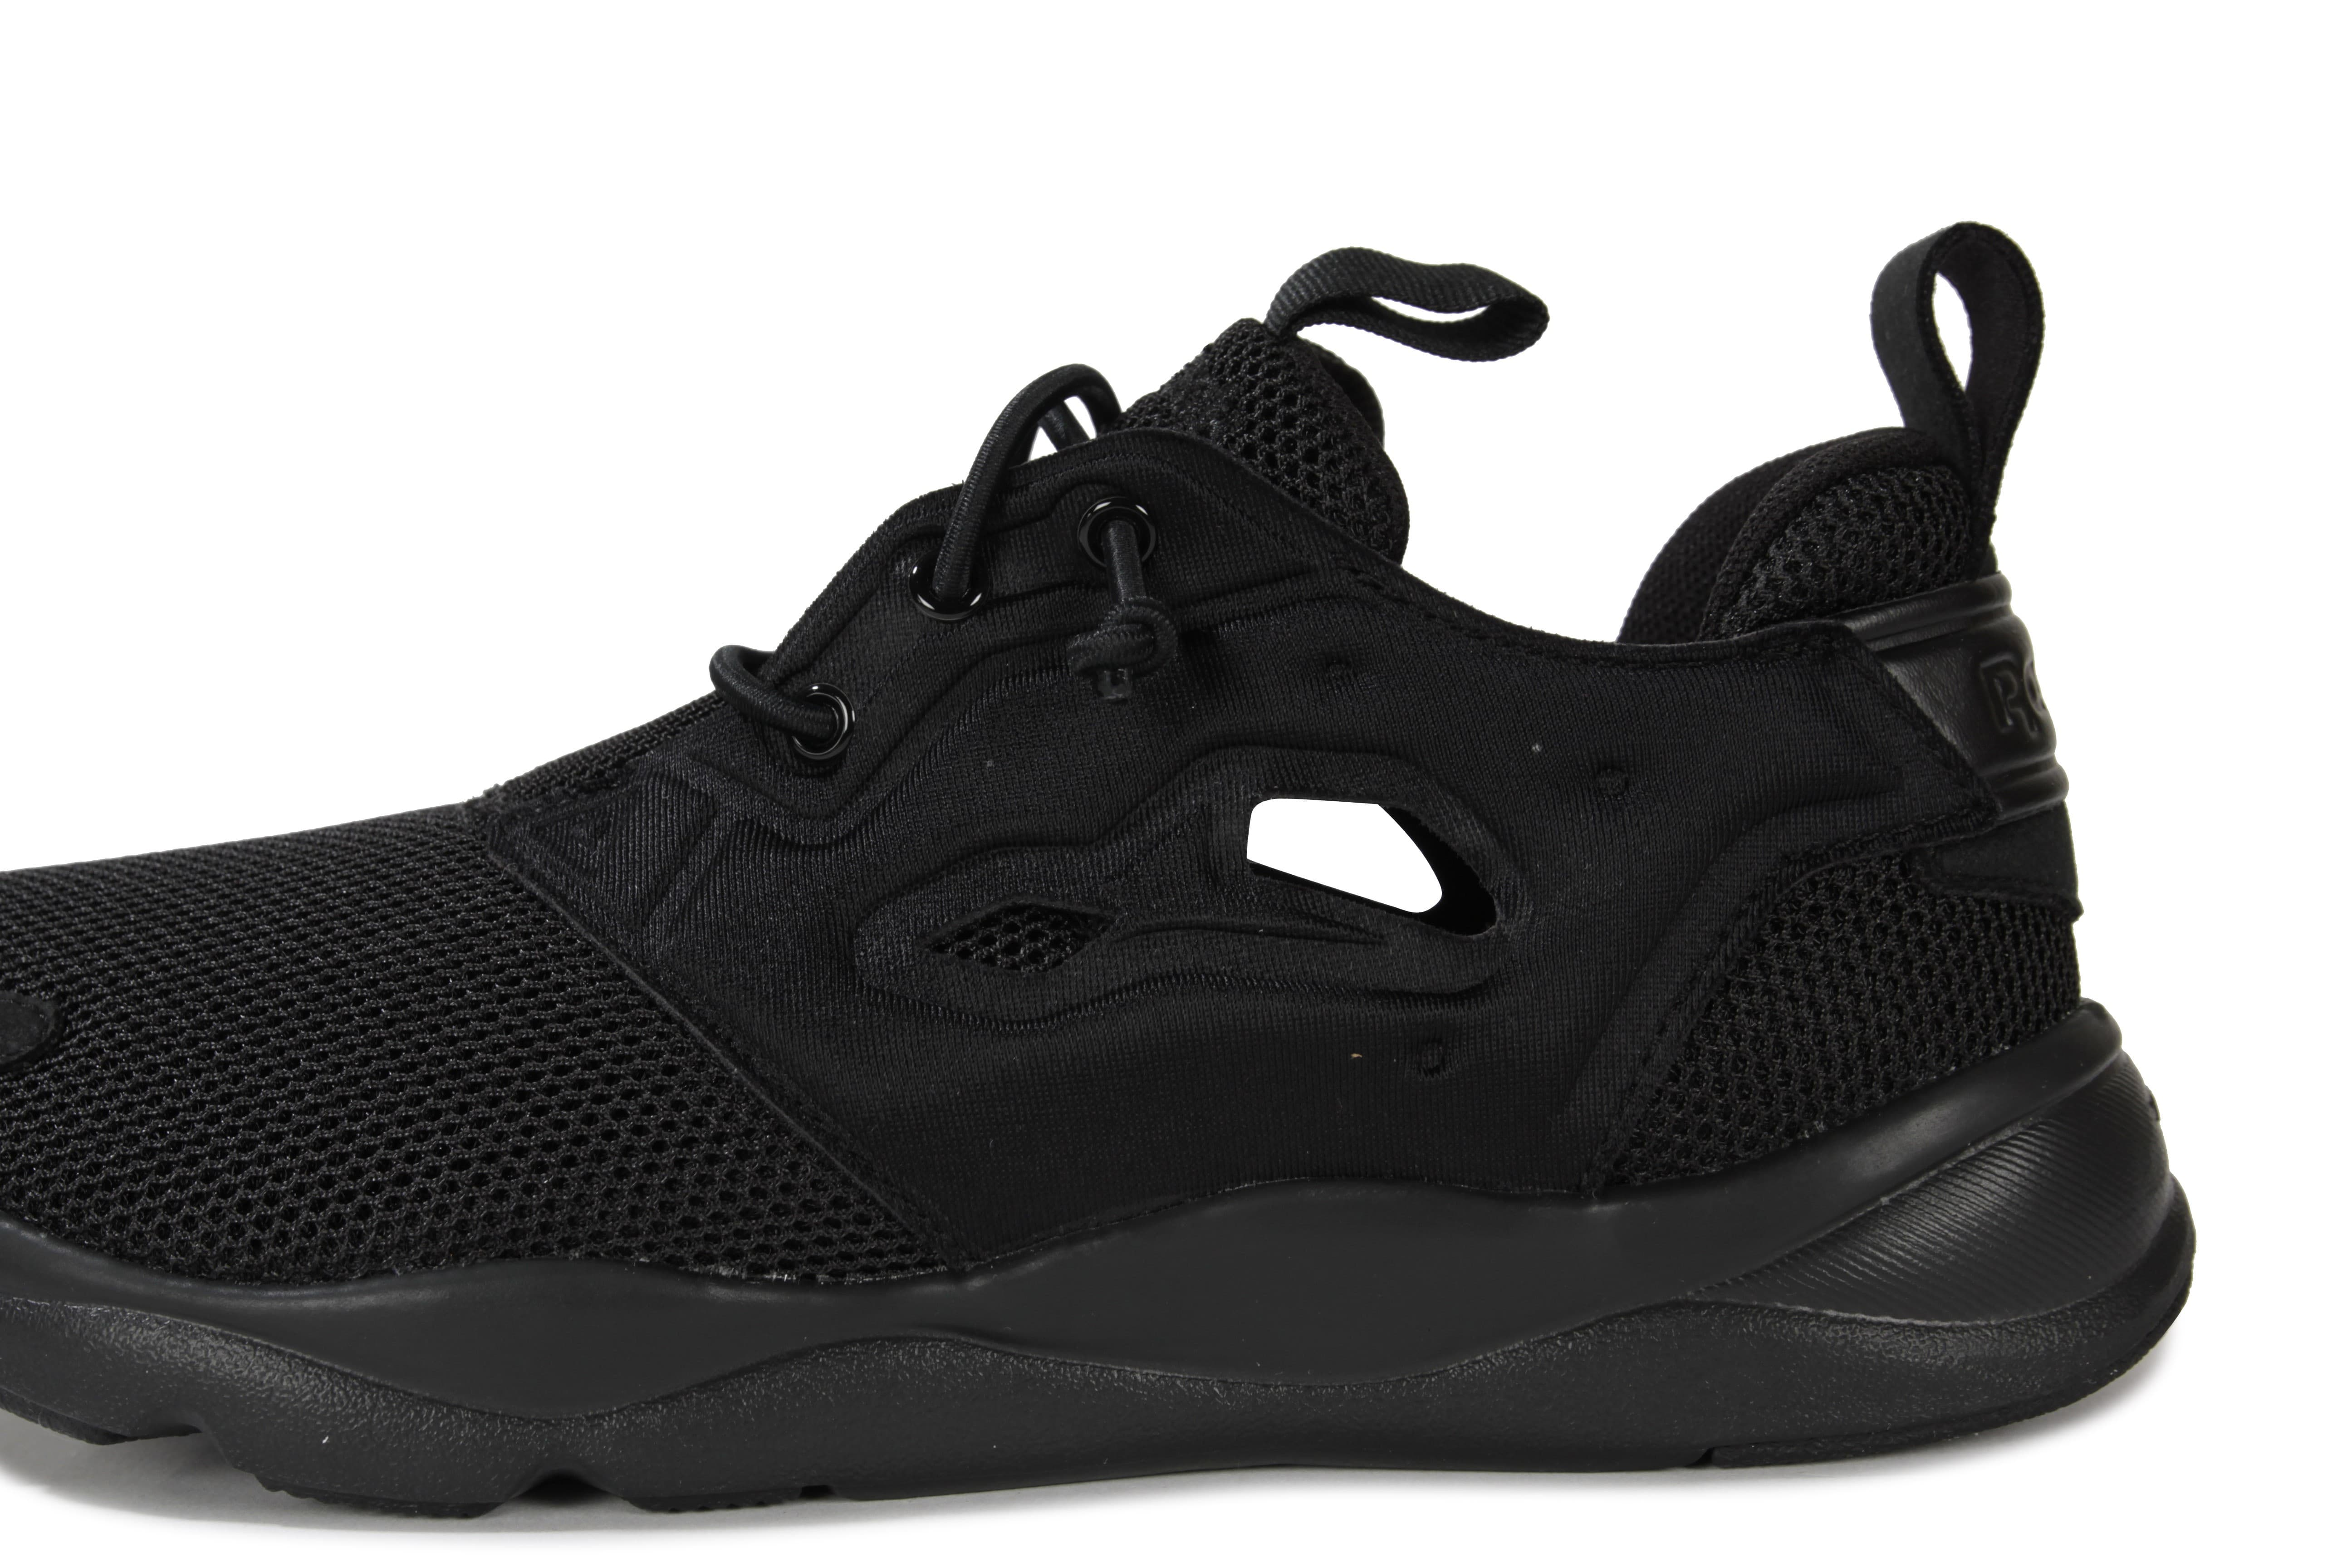 reebok furylite noir chaussures chaussures chausport. Black Bedroom Furniture Sets. Home Design Ideas